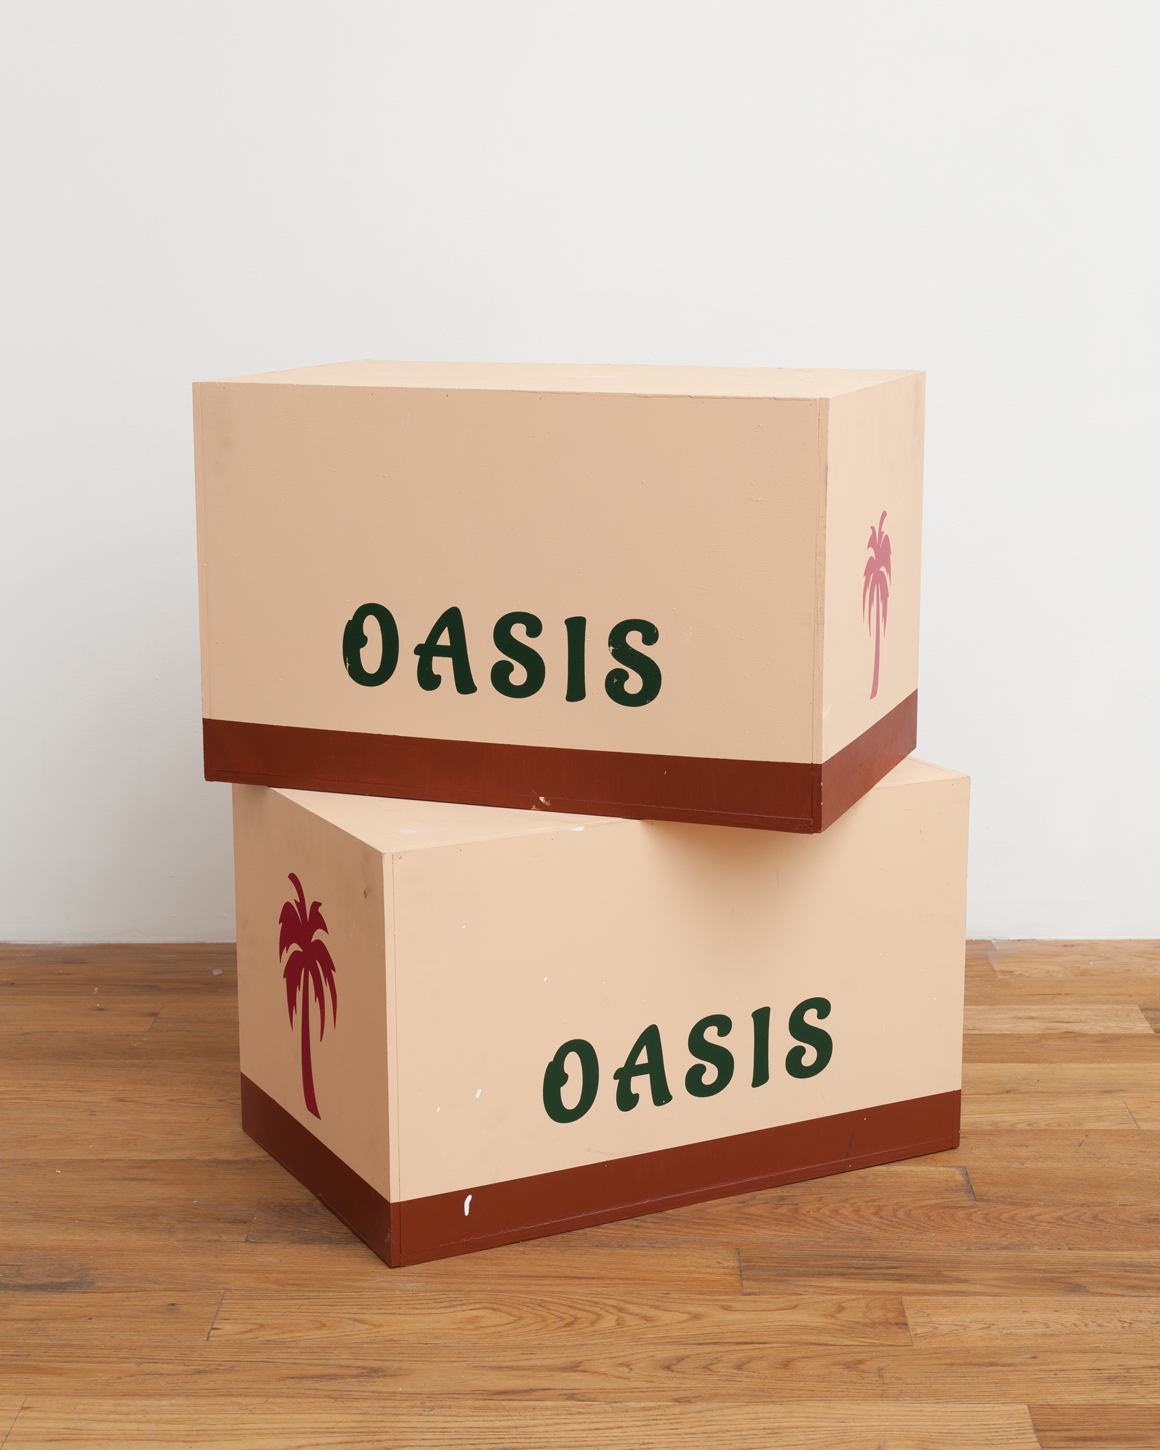 "<p><span class=""name"">Adam Stamp</span><br><em>Oasis Boxes (Sculptural Teaser Trailer for a Future Show, Presently Past)</em>Edition of AP 1 of 6 